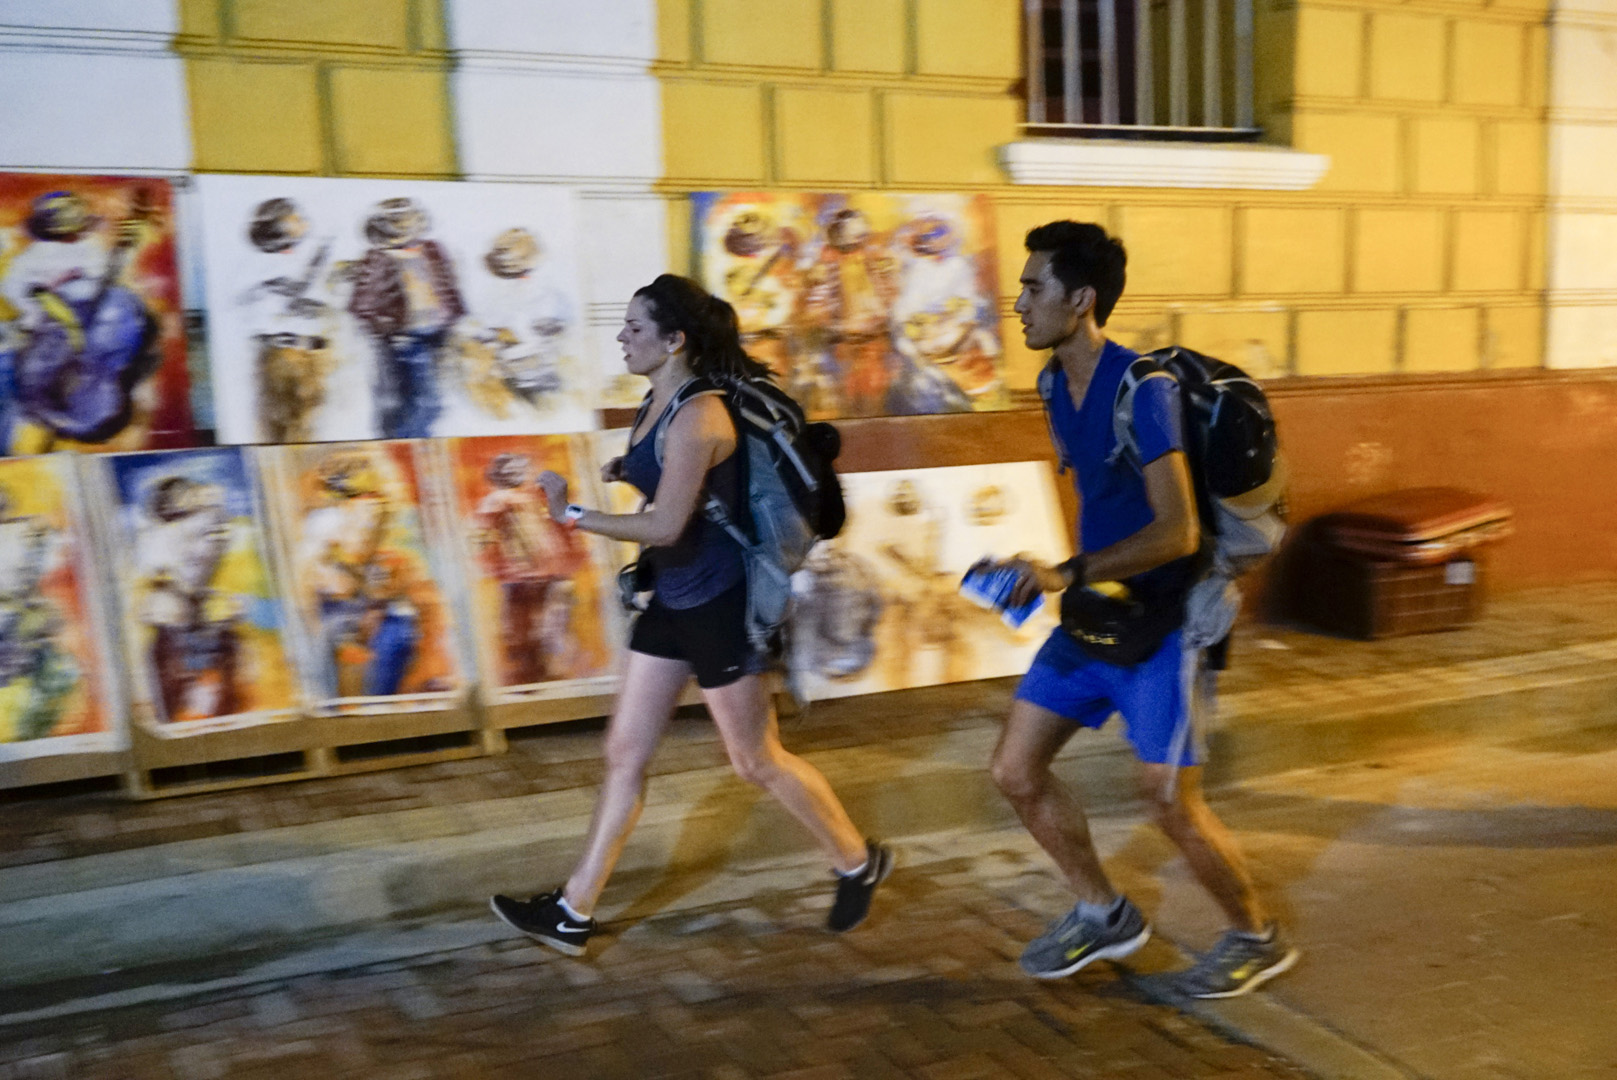 3. What has been the biggest thing you have learned from being on The Amazing Race?